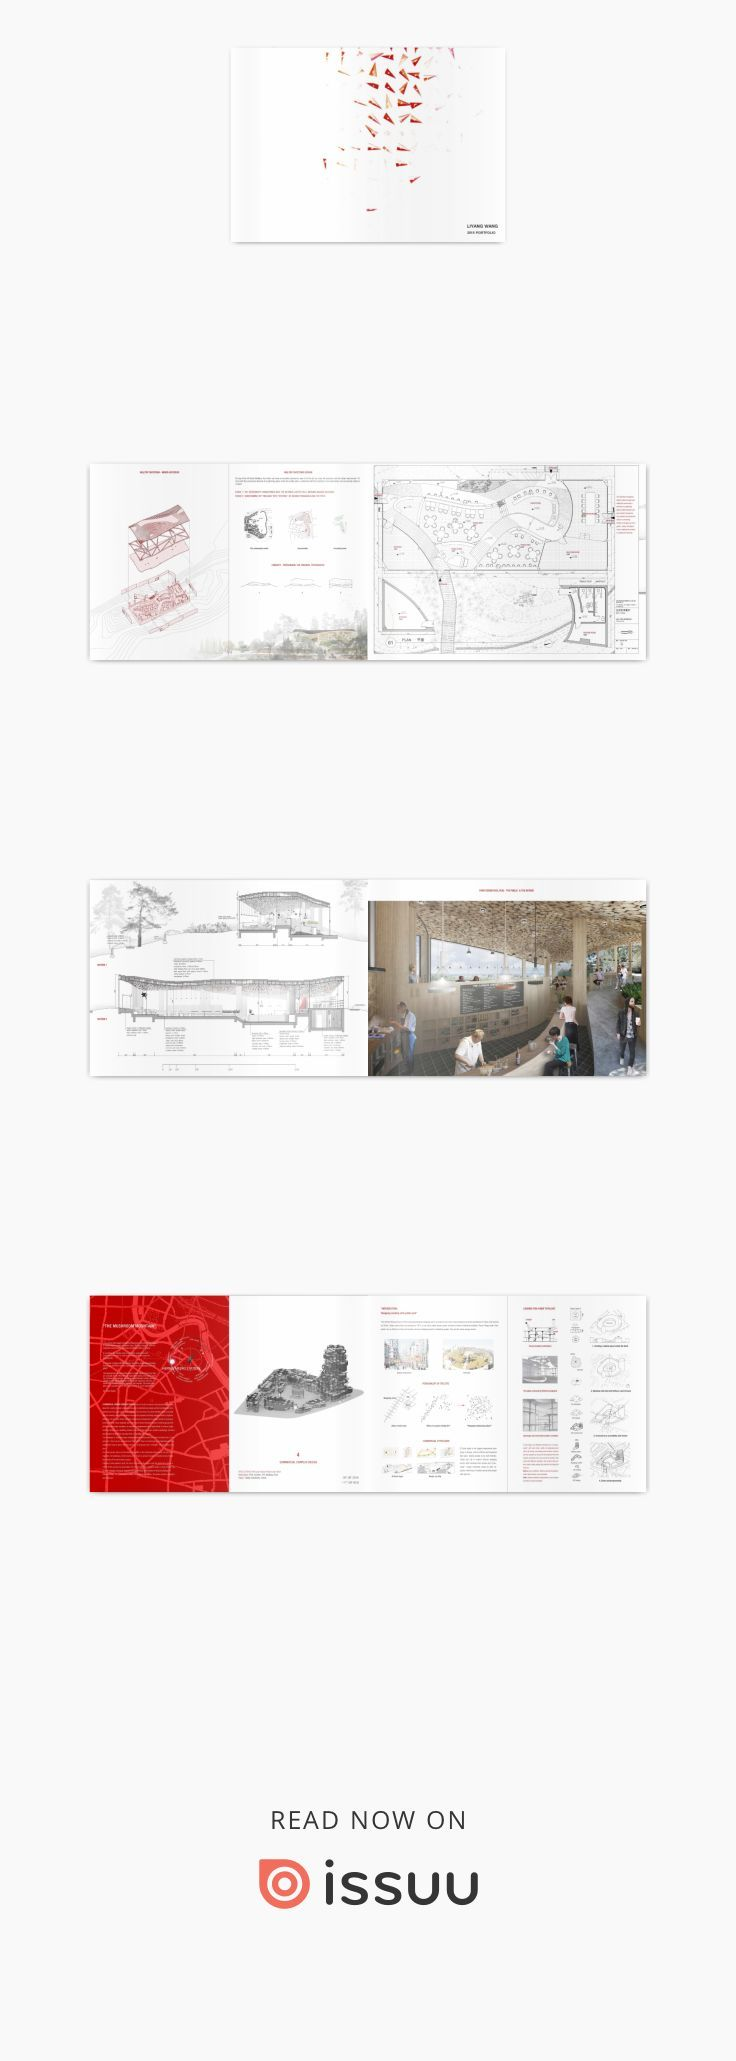 Liyang Wang architecture porfolio undergraduate works  Admission to Yale University YSOA M.Arch II, Columbia GSAPP M.S.A.A.D and Cornell M.Arch II.